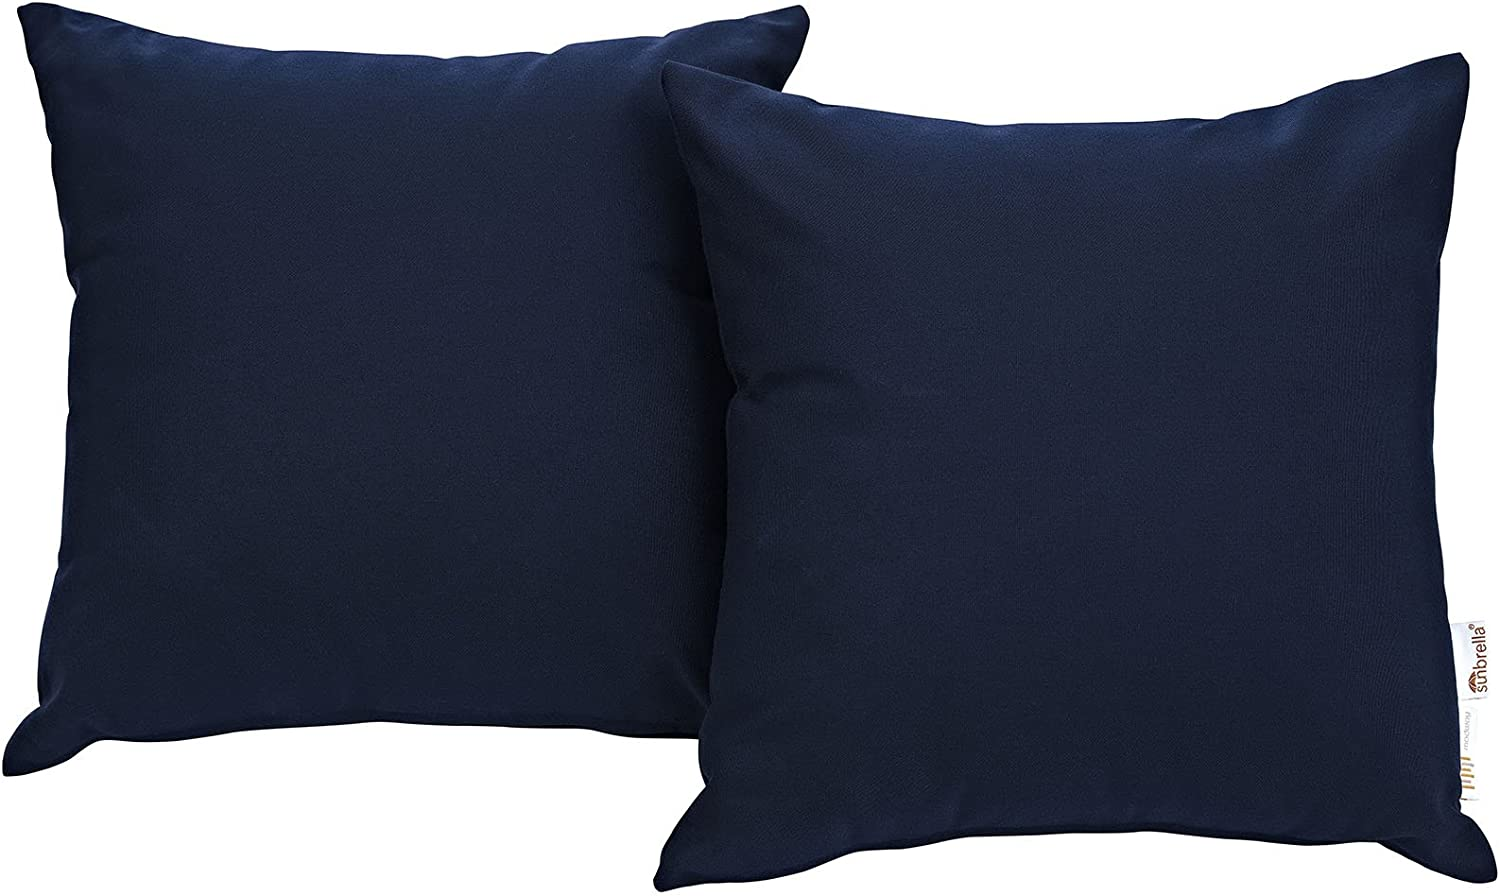 Modway Summon Outdoor Patio Two All-Weather Decor Throw Pillows Sunbrella Fabric in Navy